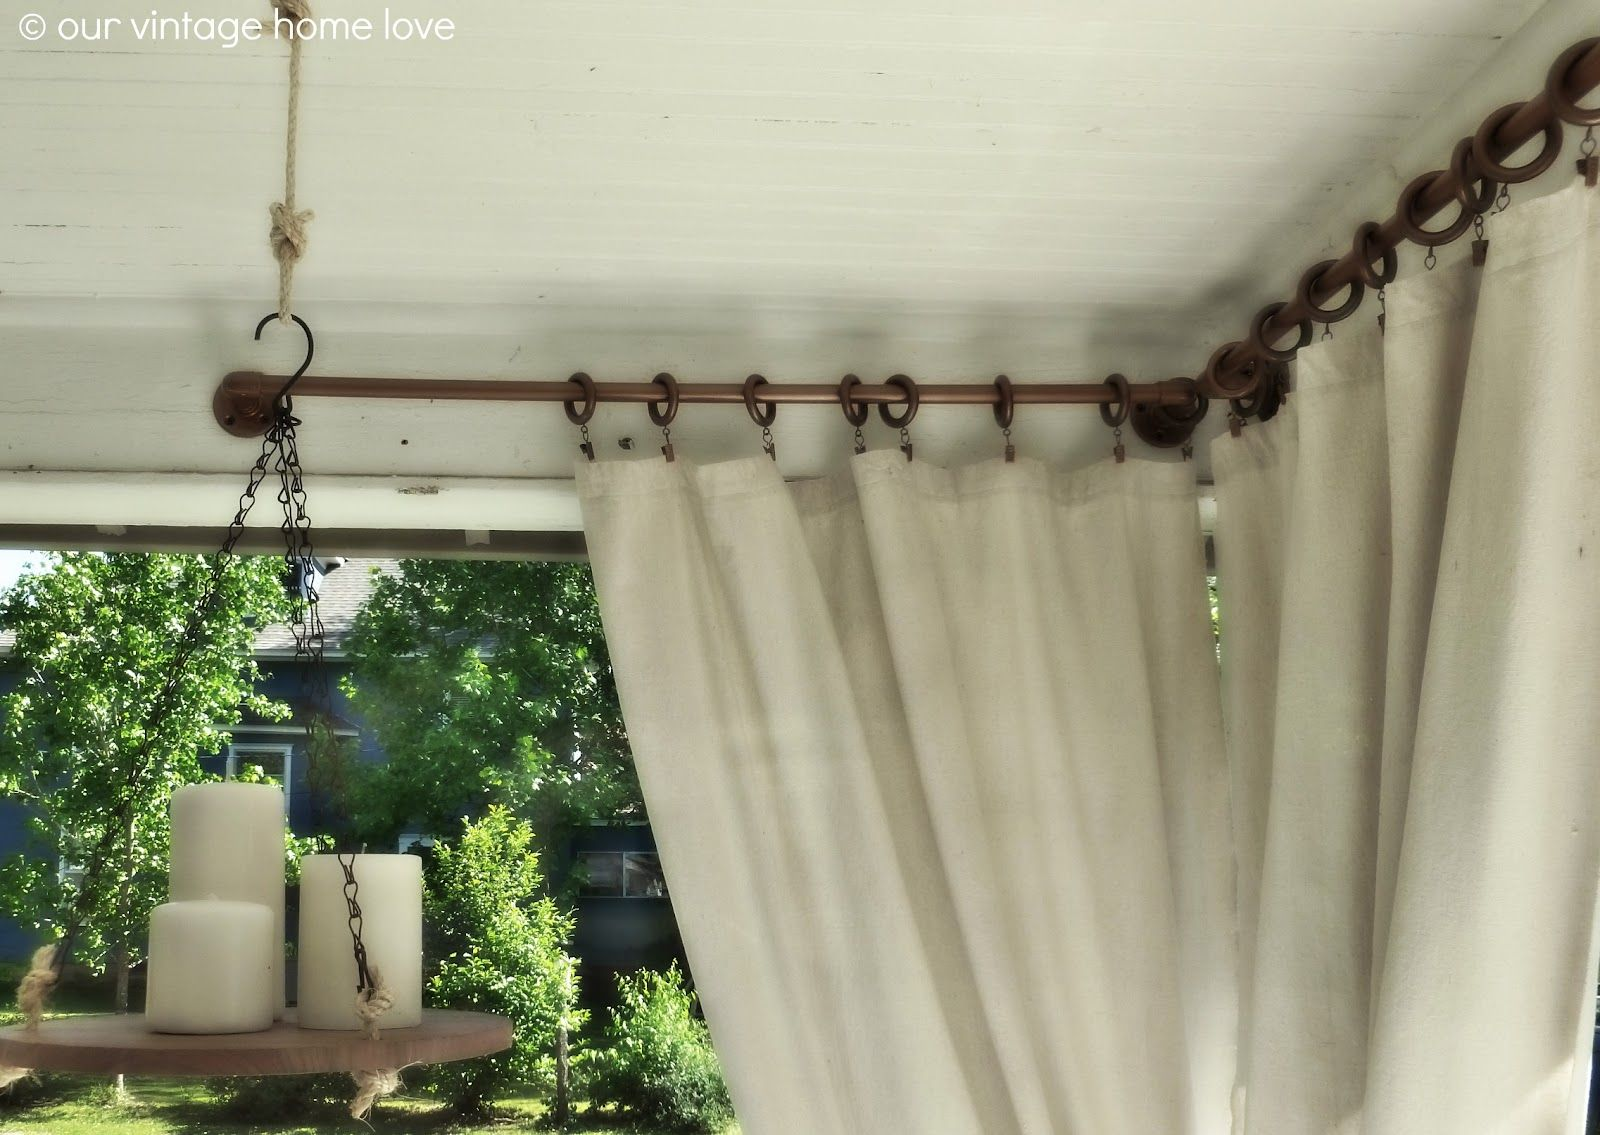 Curtain Ideas Outdoor Curtain Ideas Used Pvc Pipe And Spray Painted It With